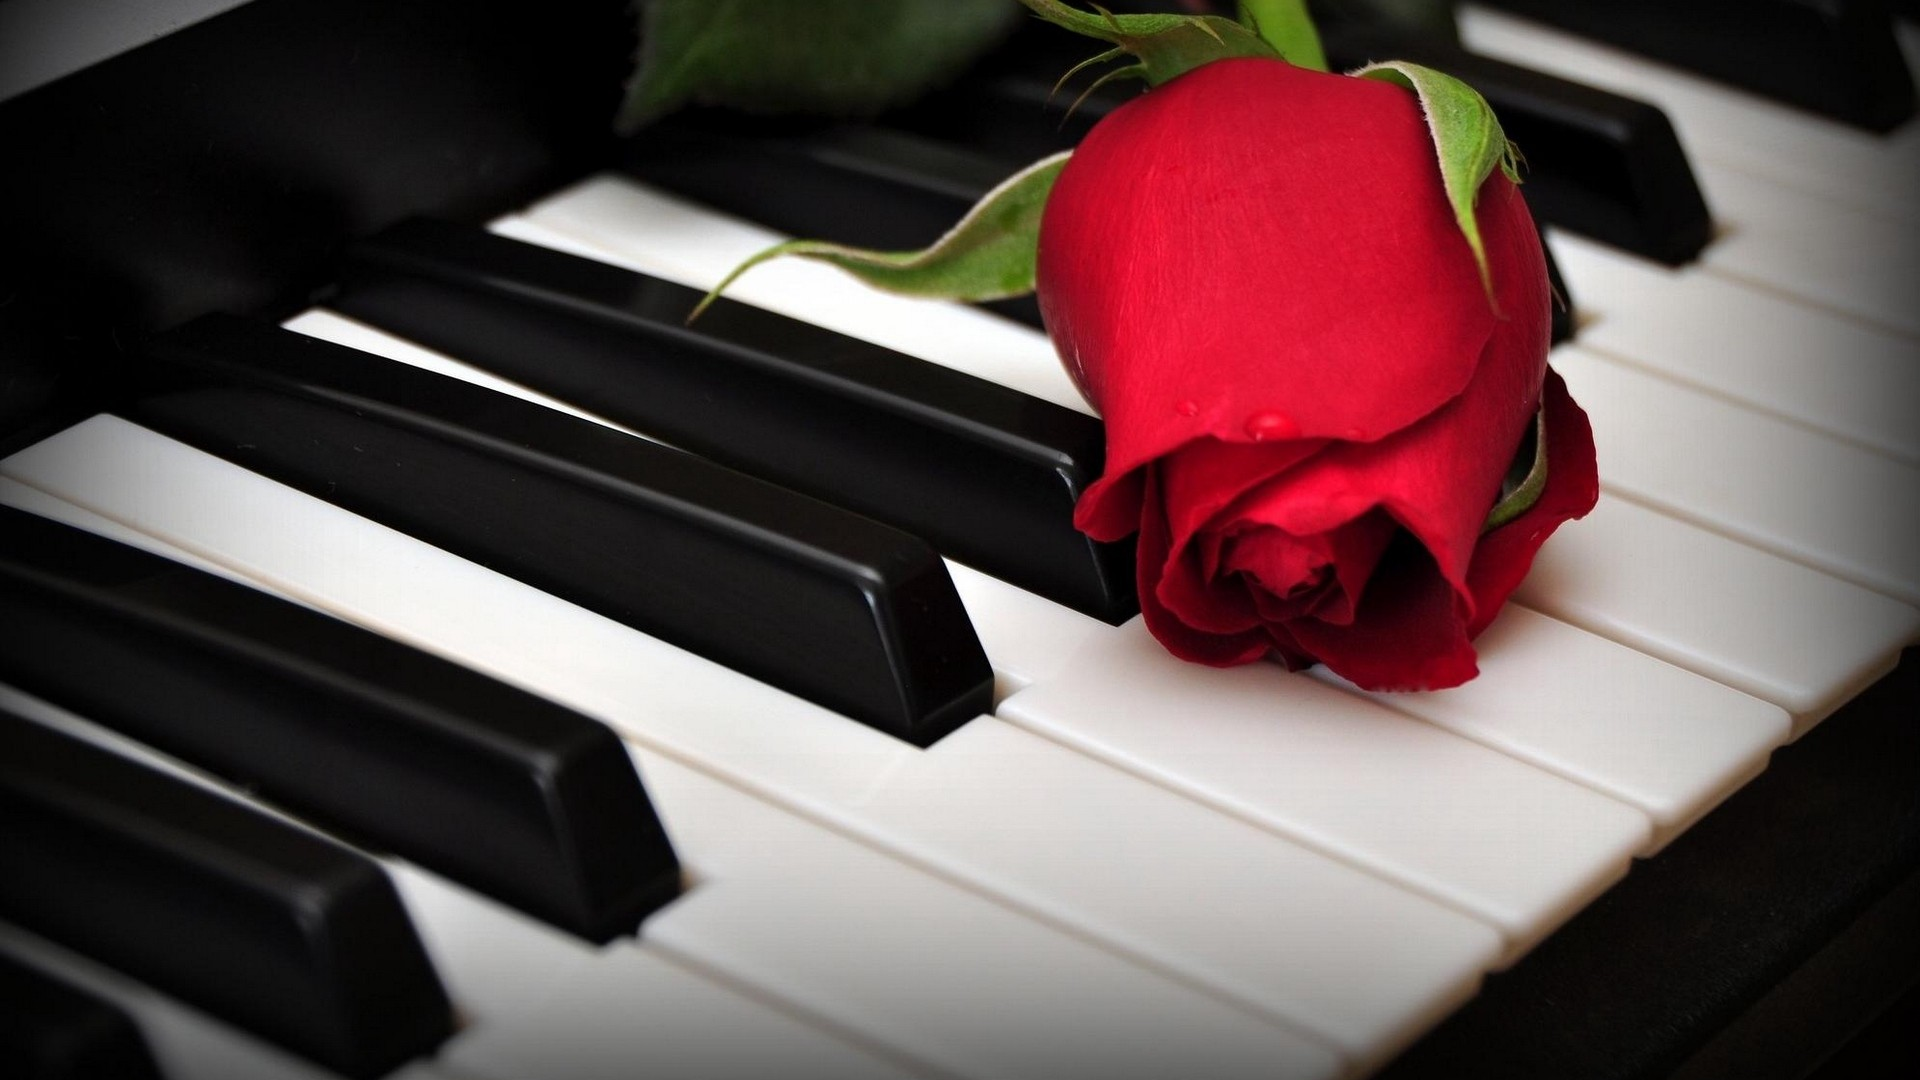 1920x1080  Wallpaper rose, flower, keys, piano